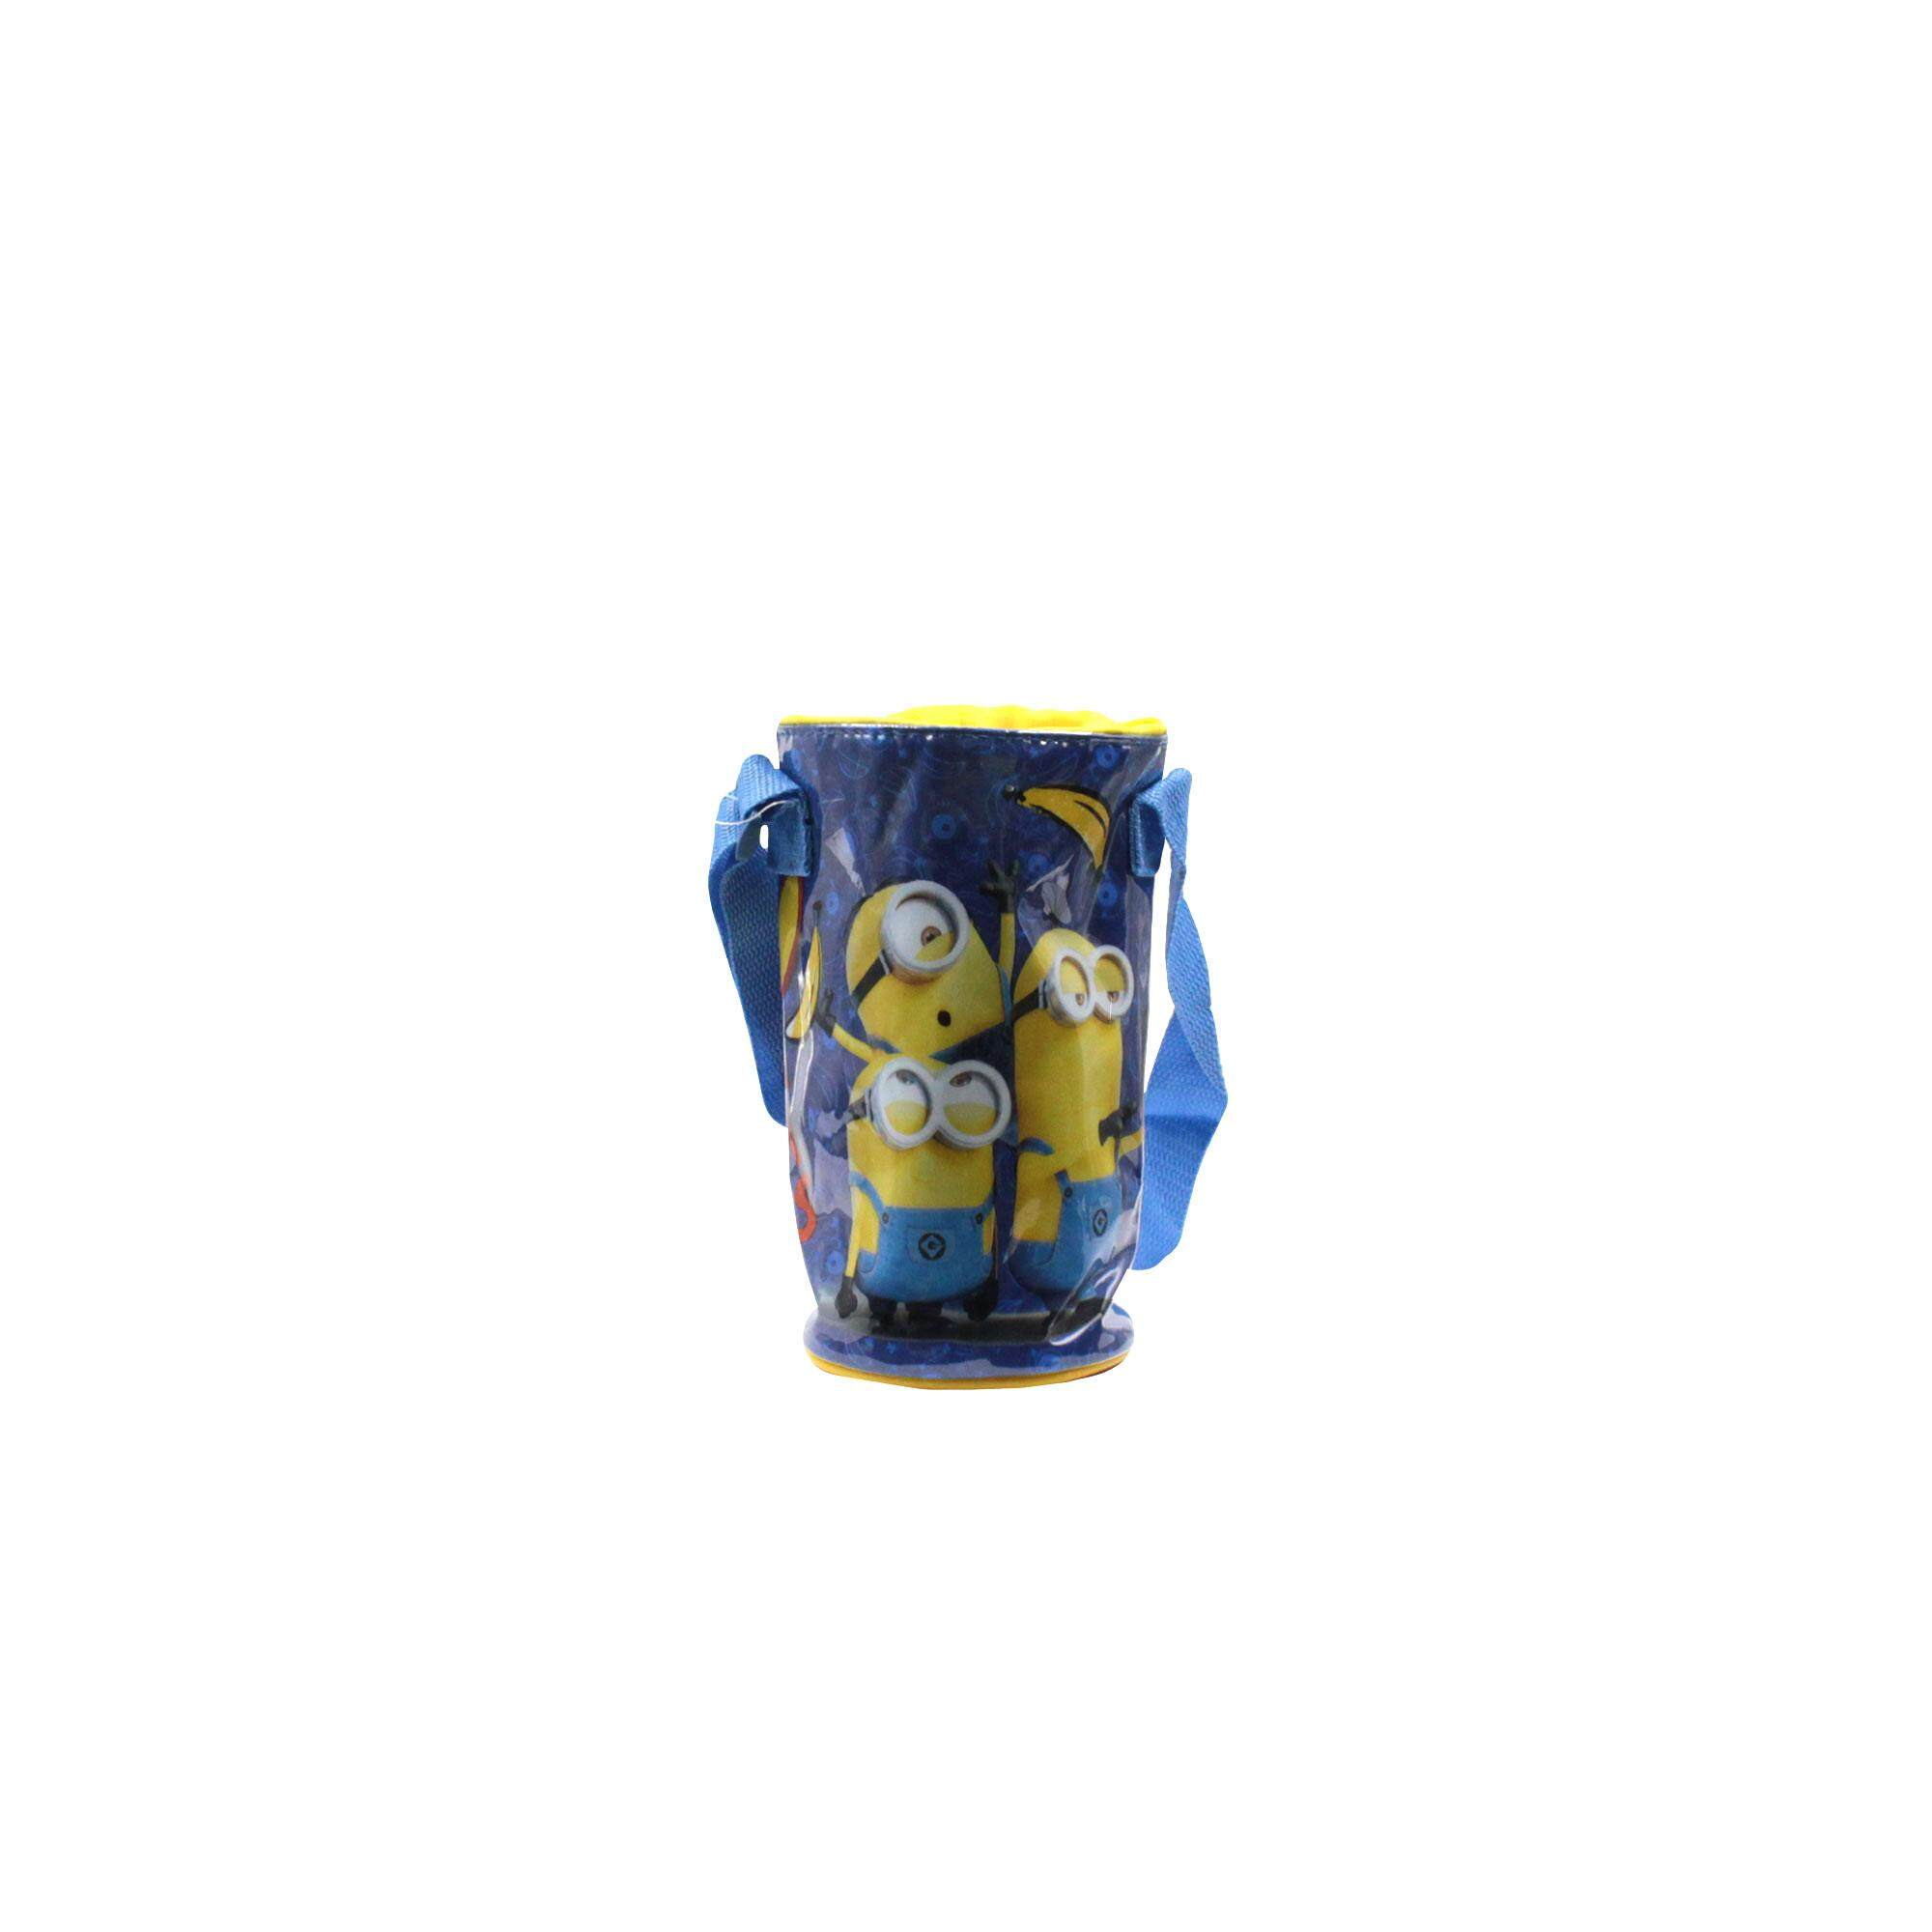 Despicable Me Minions Cartoon Character Children Water Bottle Holder